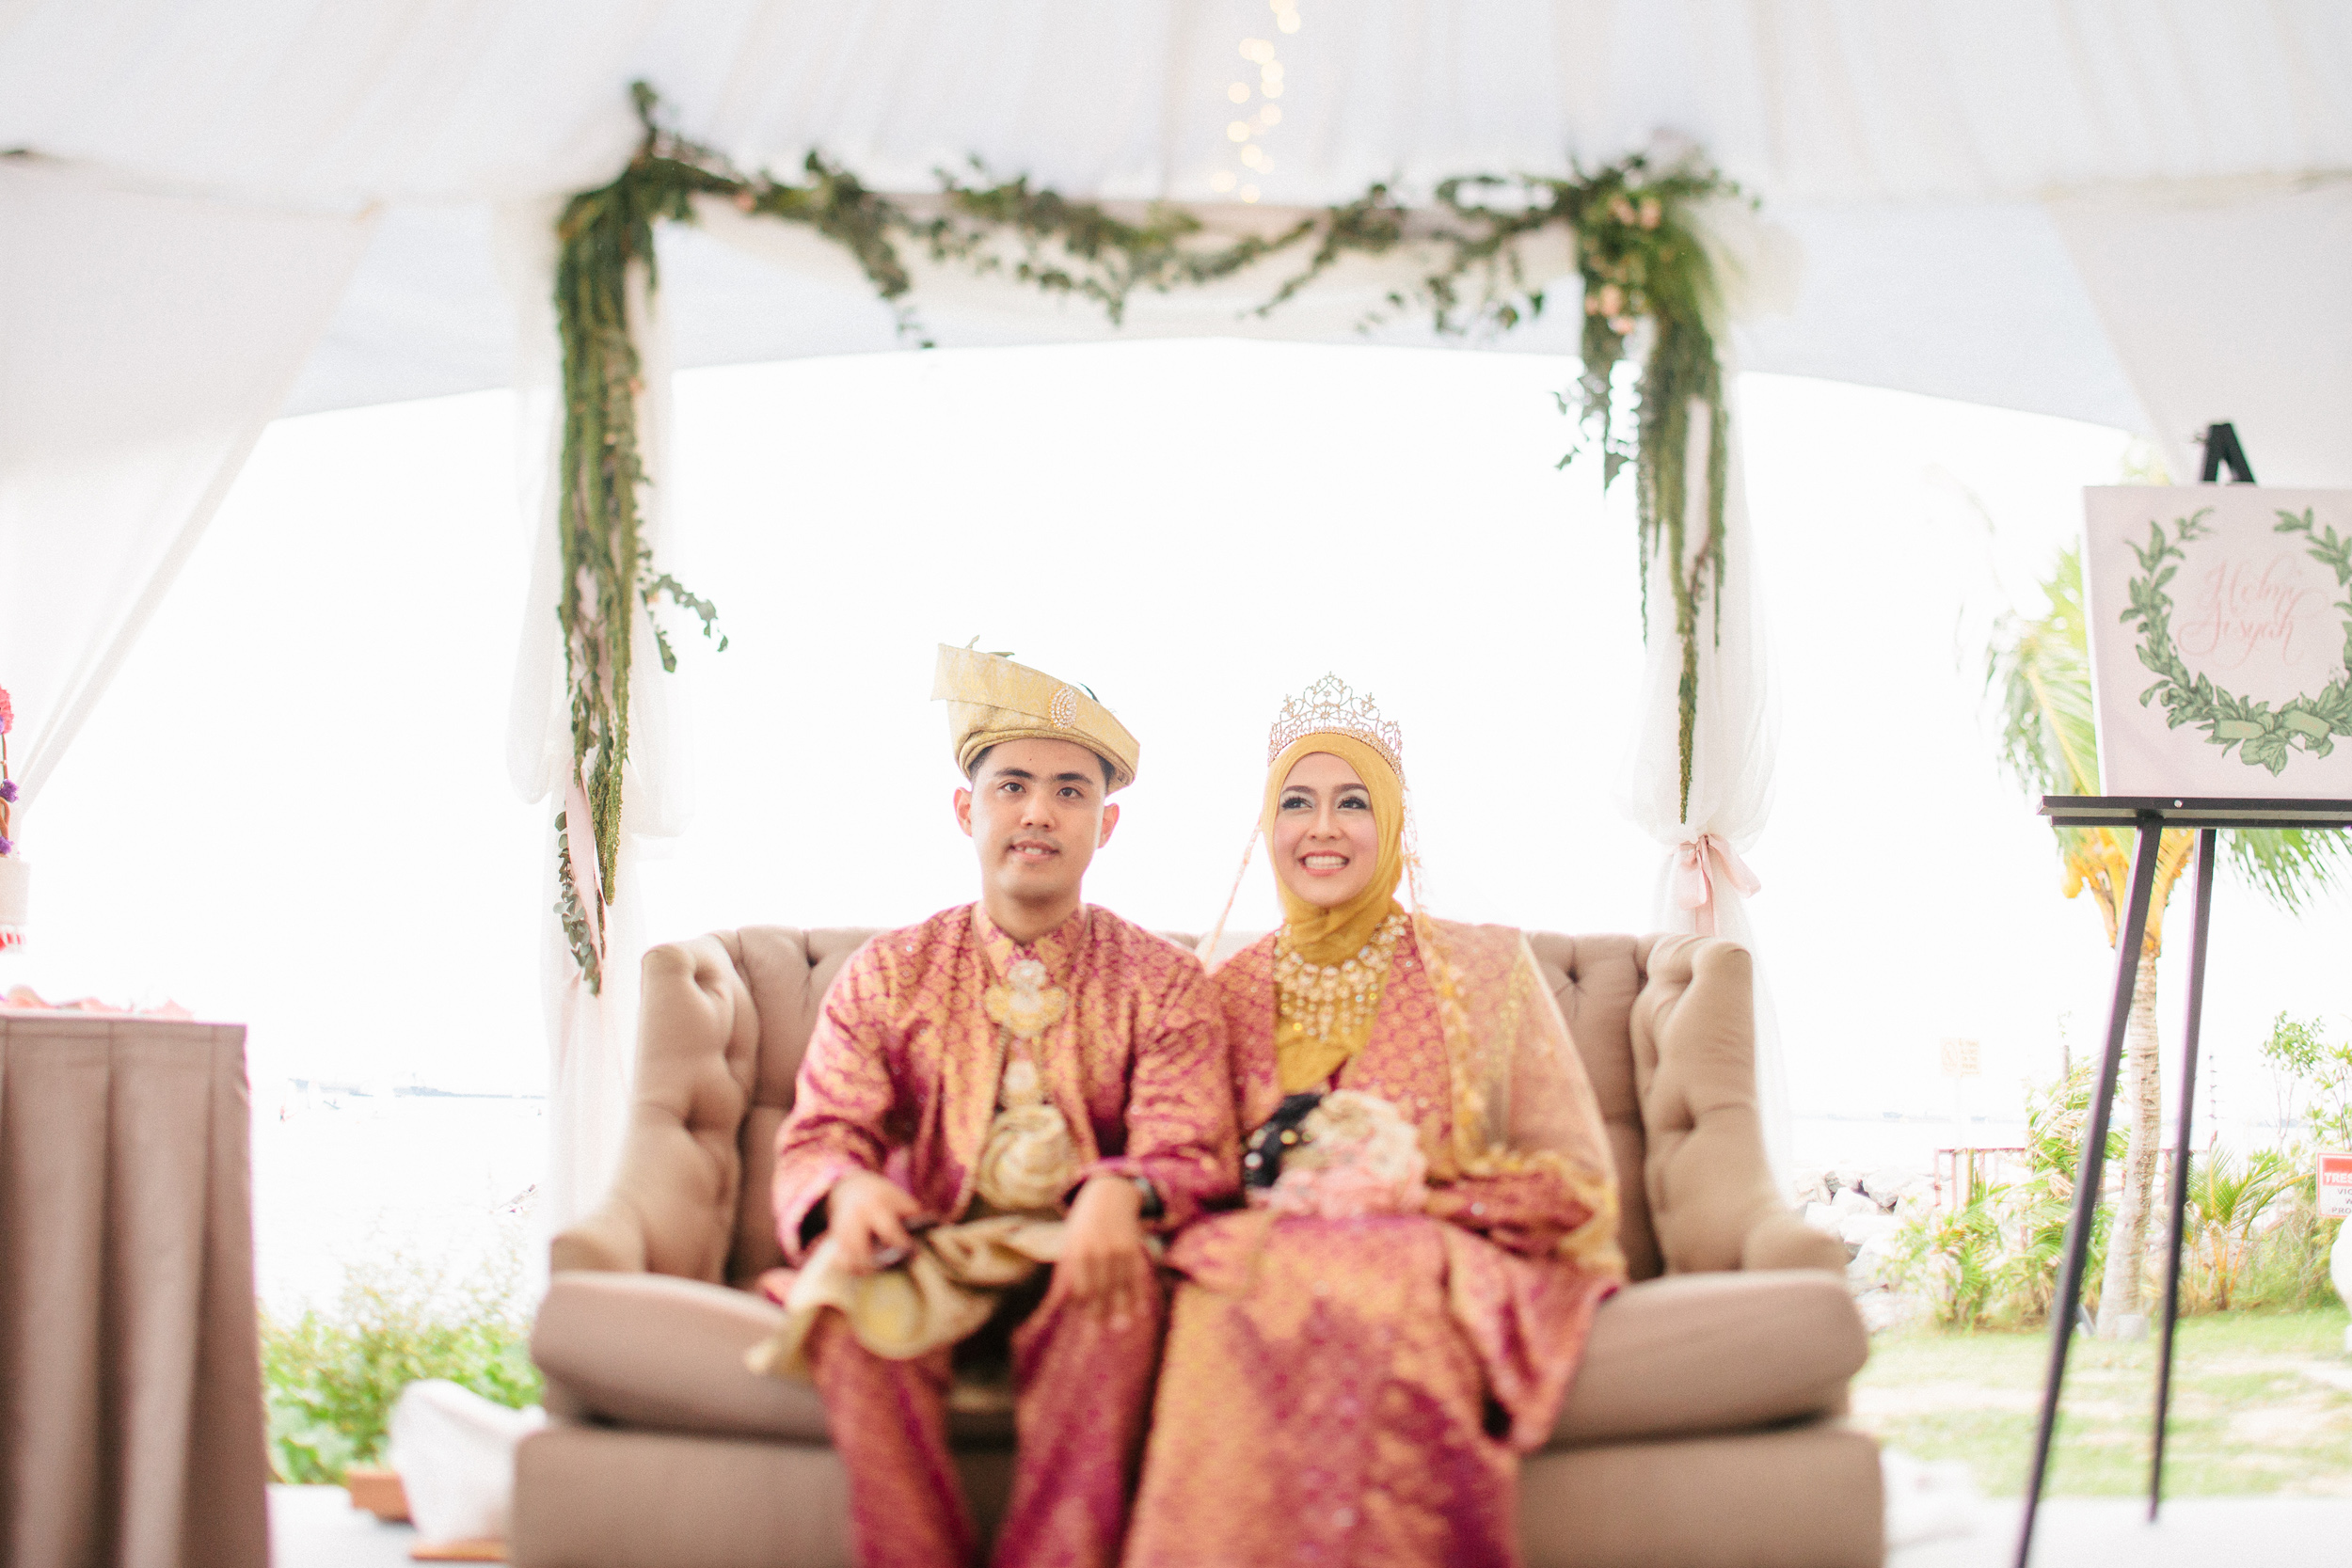 singapore-wedding-photographer-wemadethese-aisyah-helmi-47.jpg